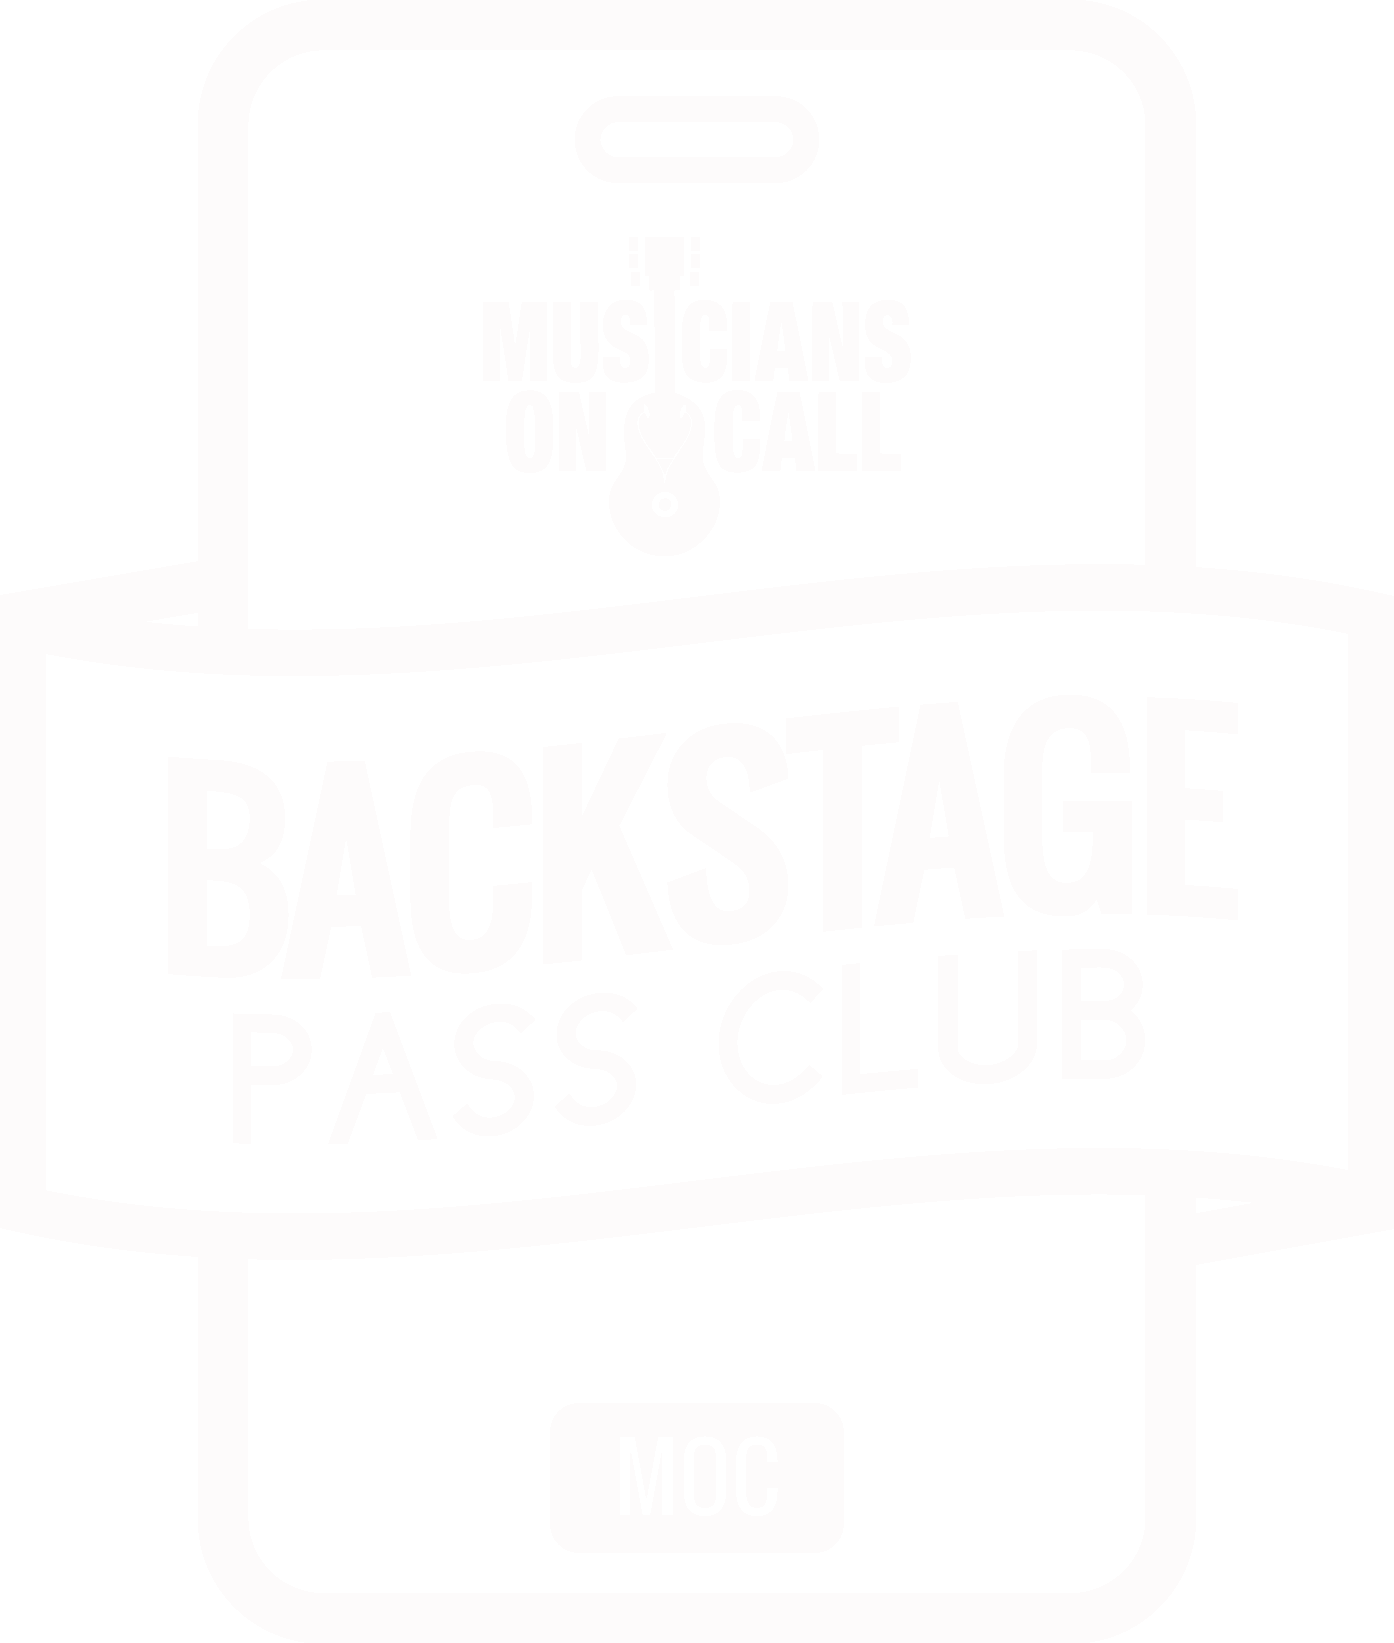 Backstage Pass Club - Musicians On Call